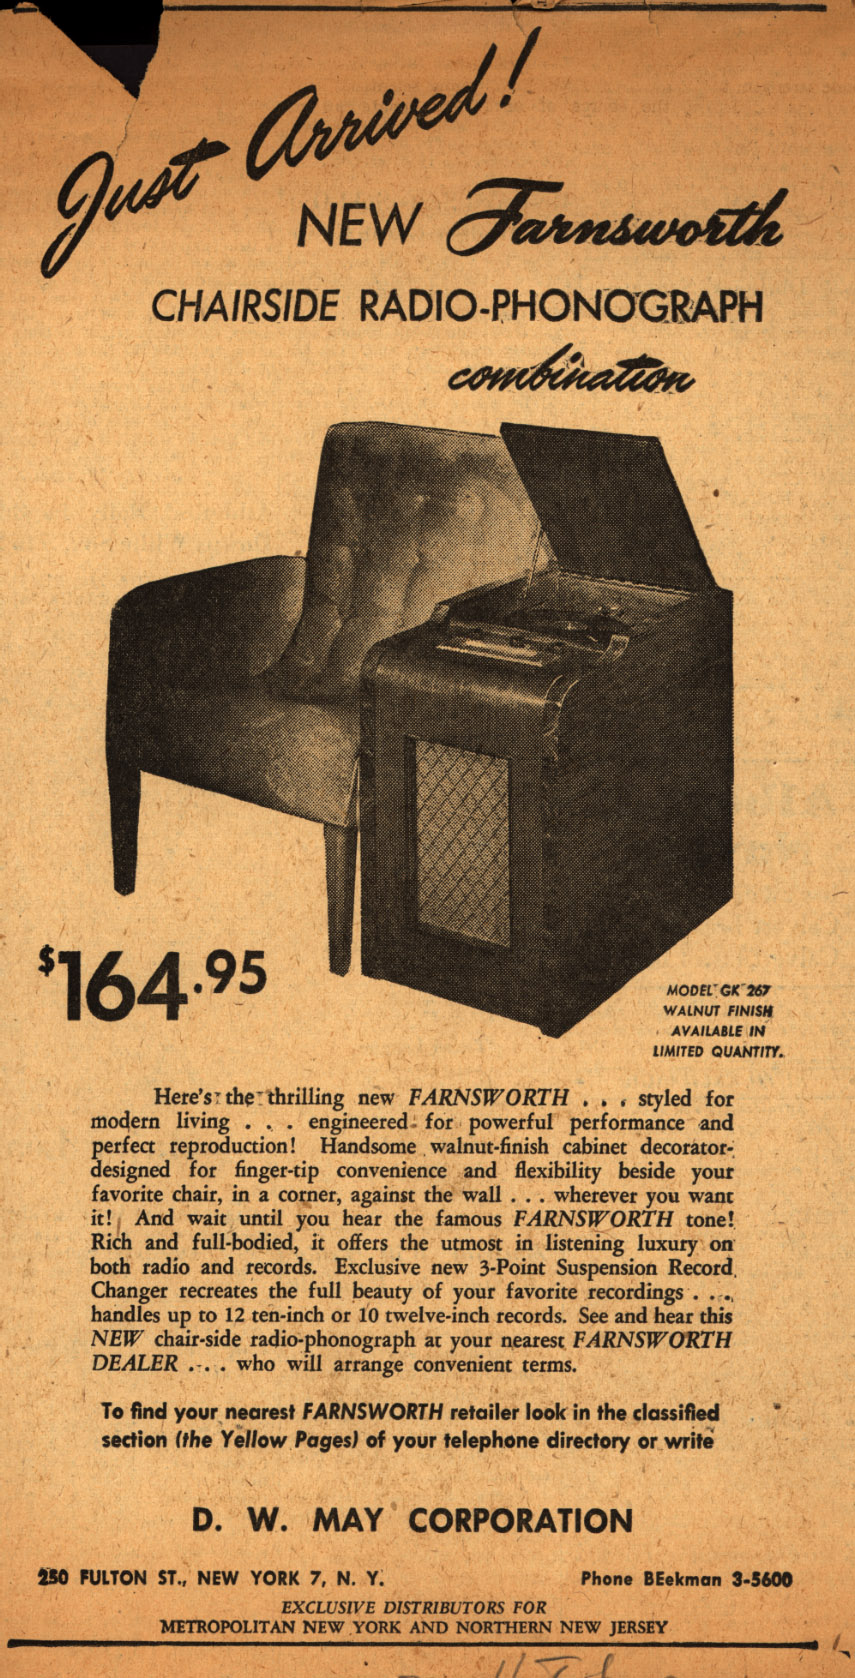 Just_Arrived_New_Farnsworth_Chairside_Radio-Phonograph_combination